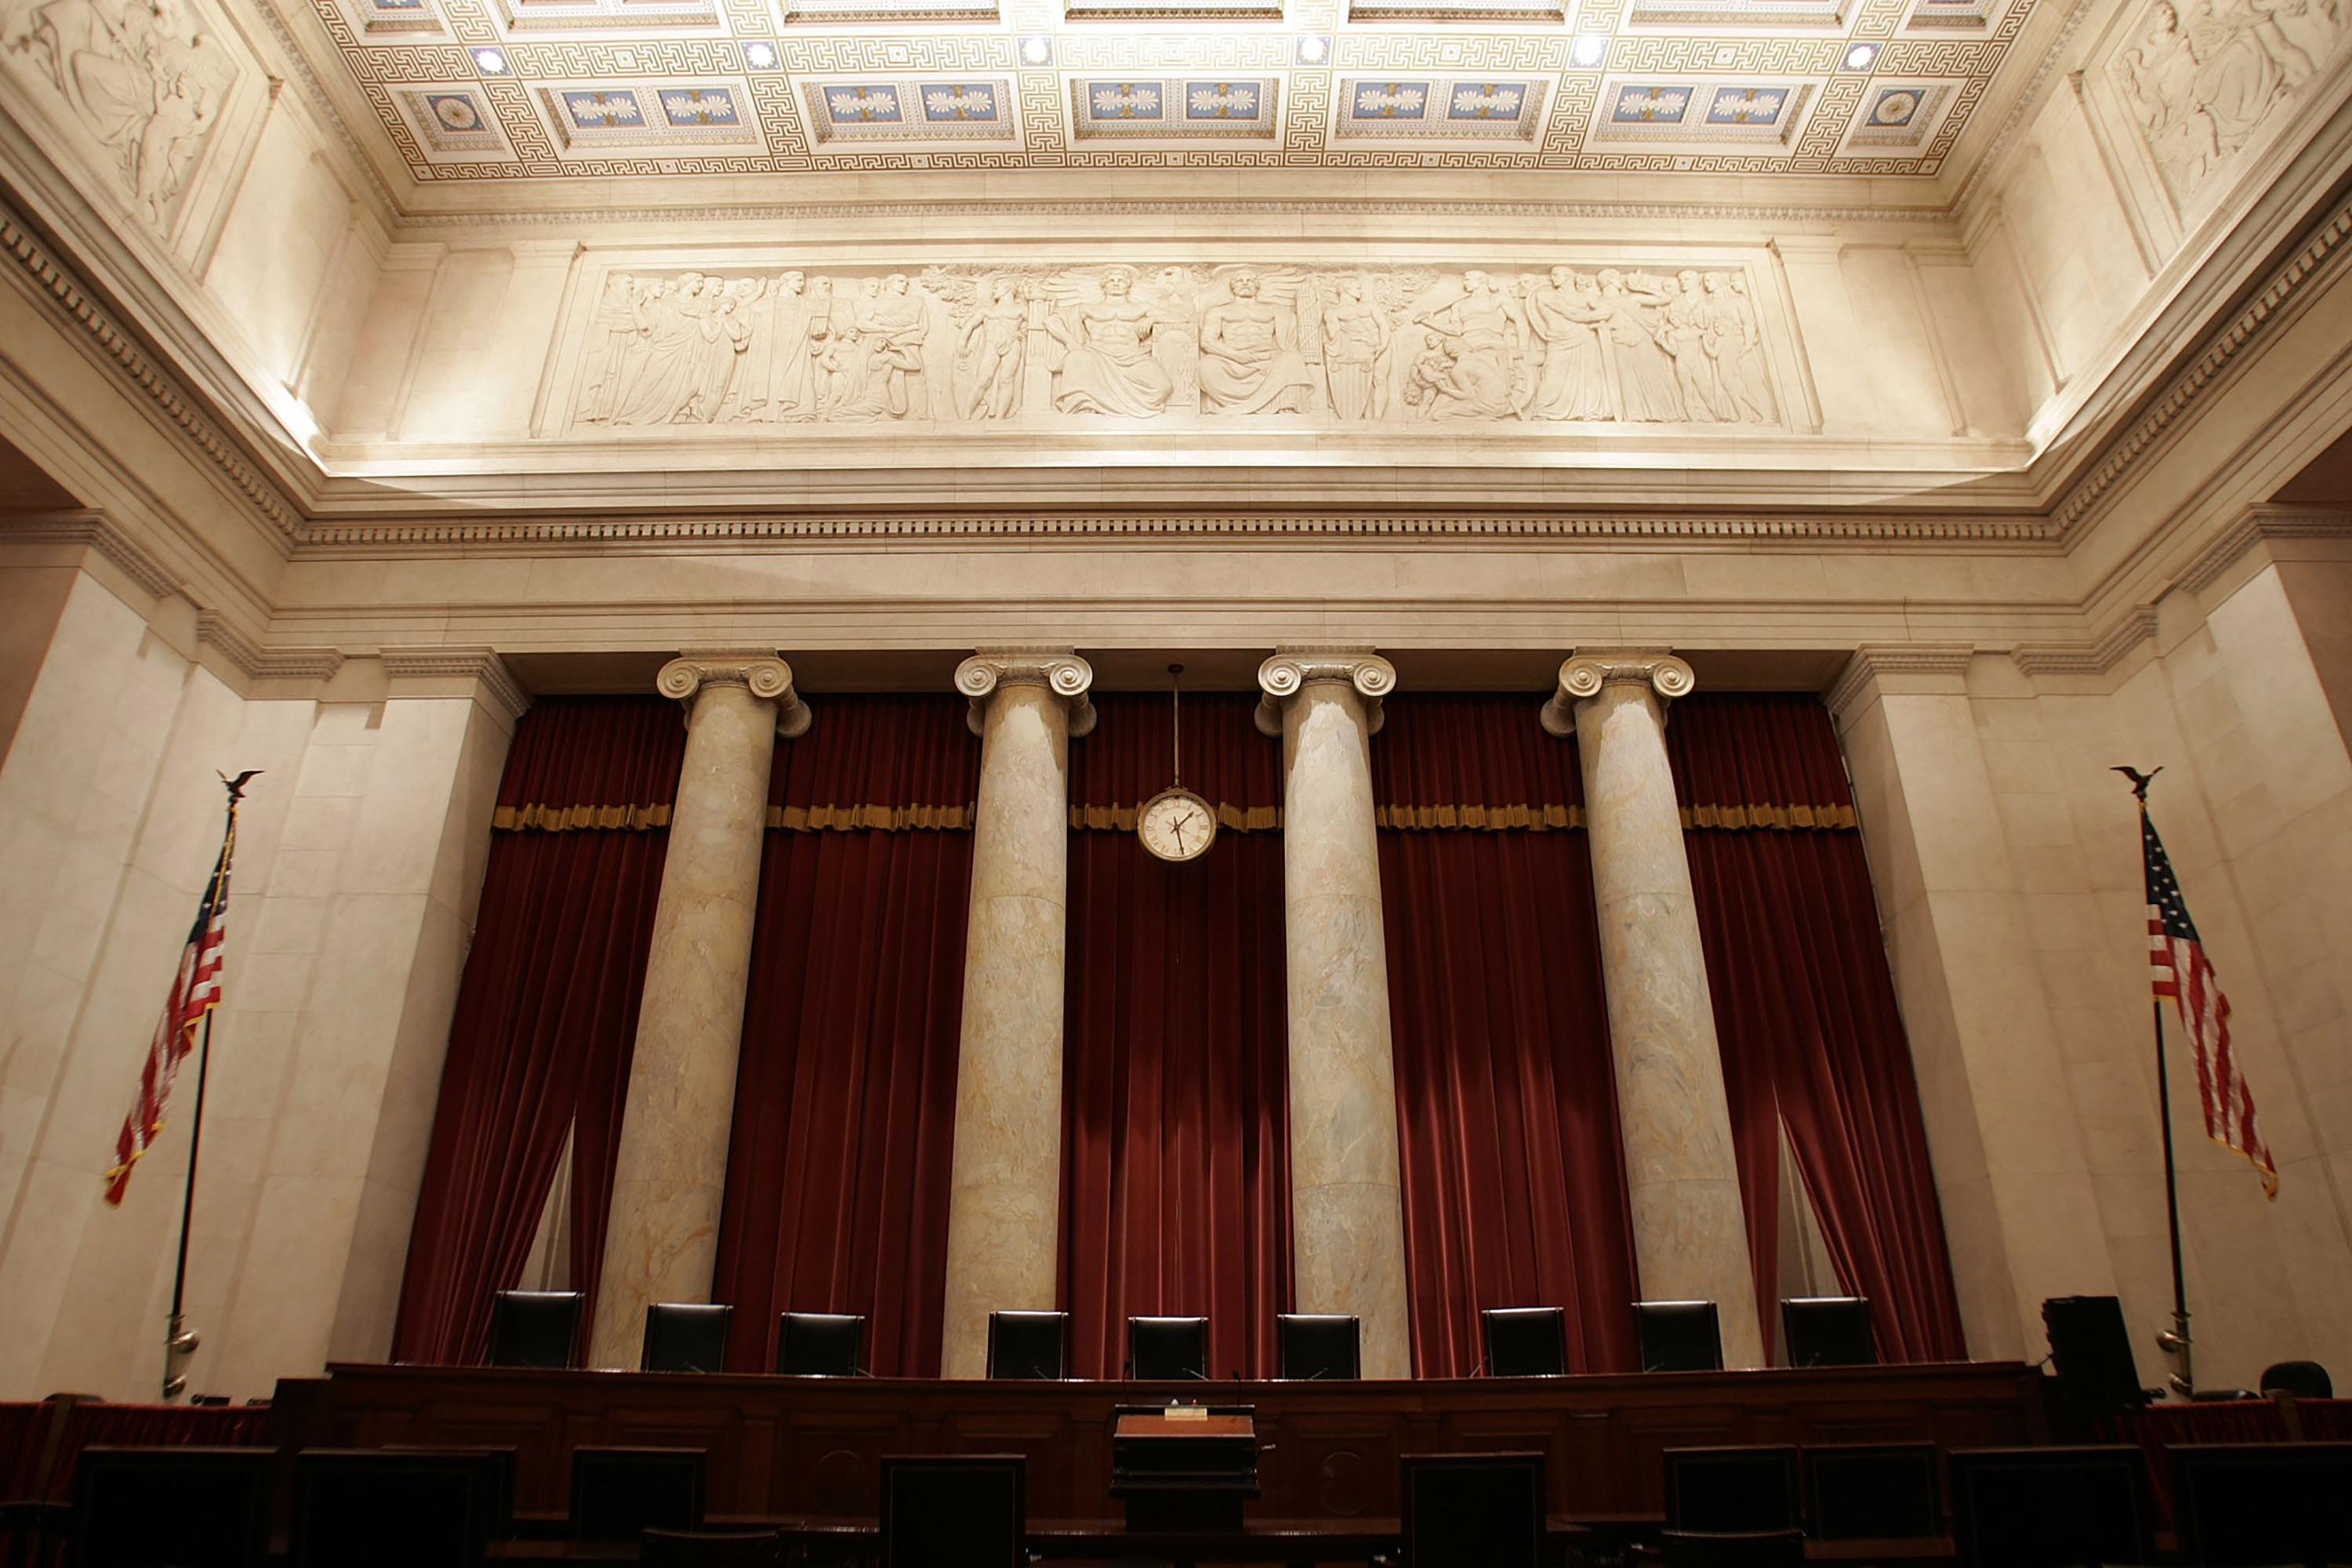 Dissents from the bench: A Supreme Court tradition missing during Covid